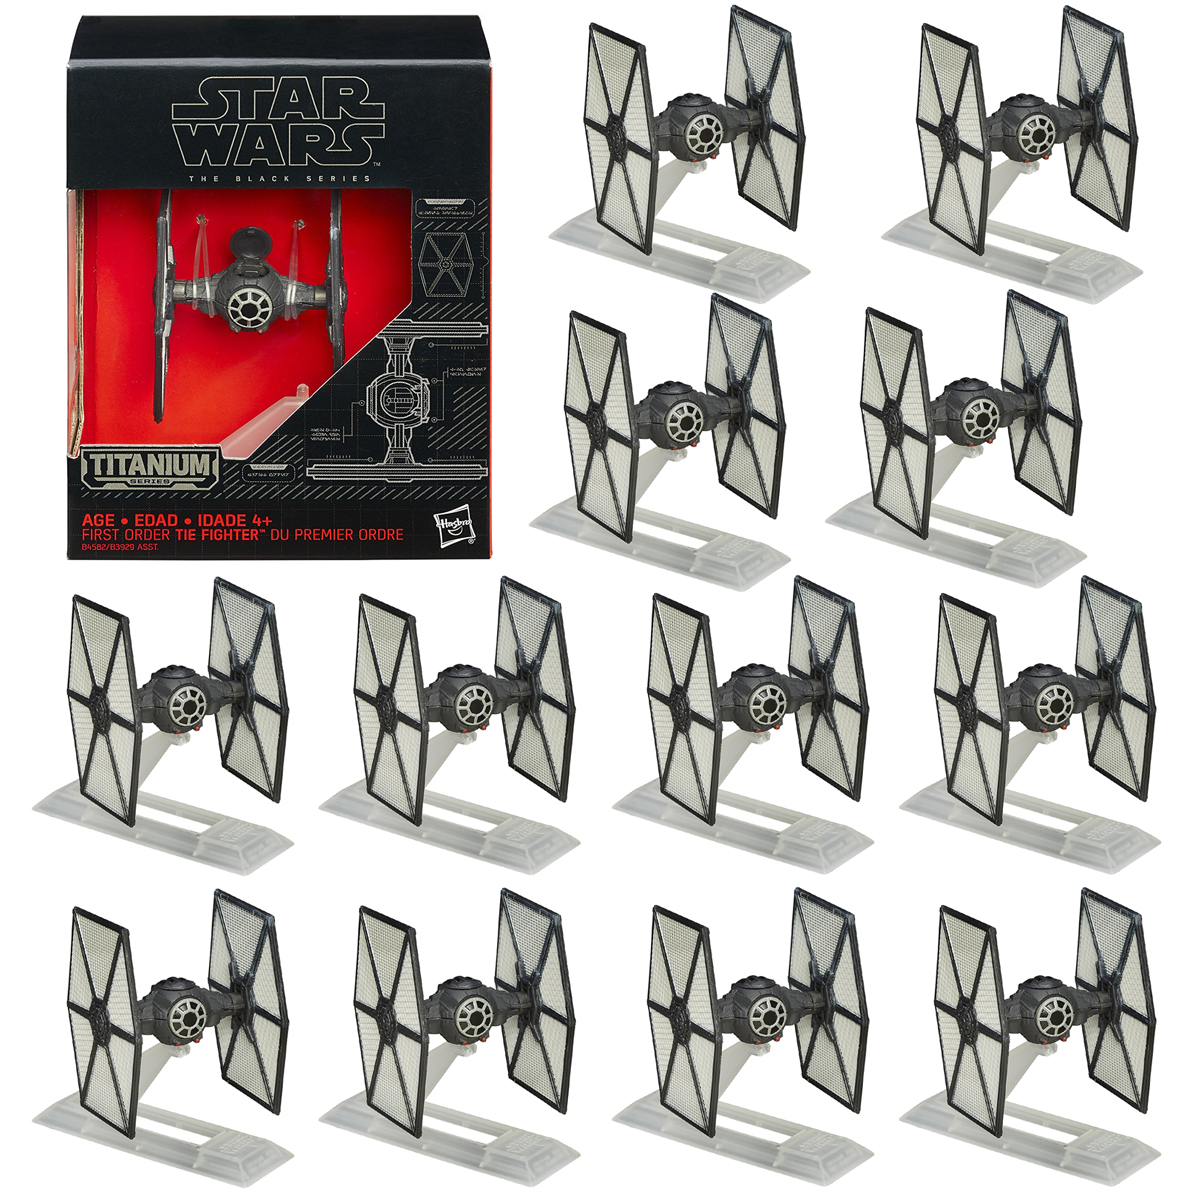 Star Wars 12 Pack Black Titanium Series TIE Fighters Spaceships & Stands By Hasbro by